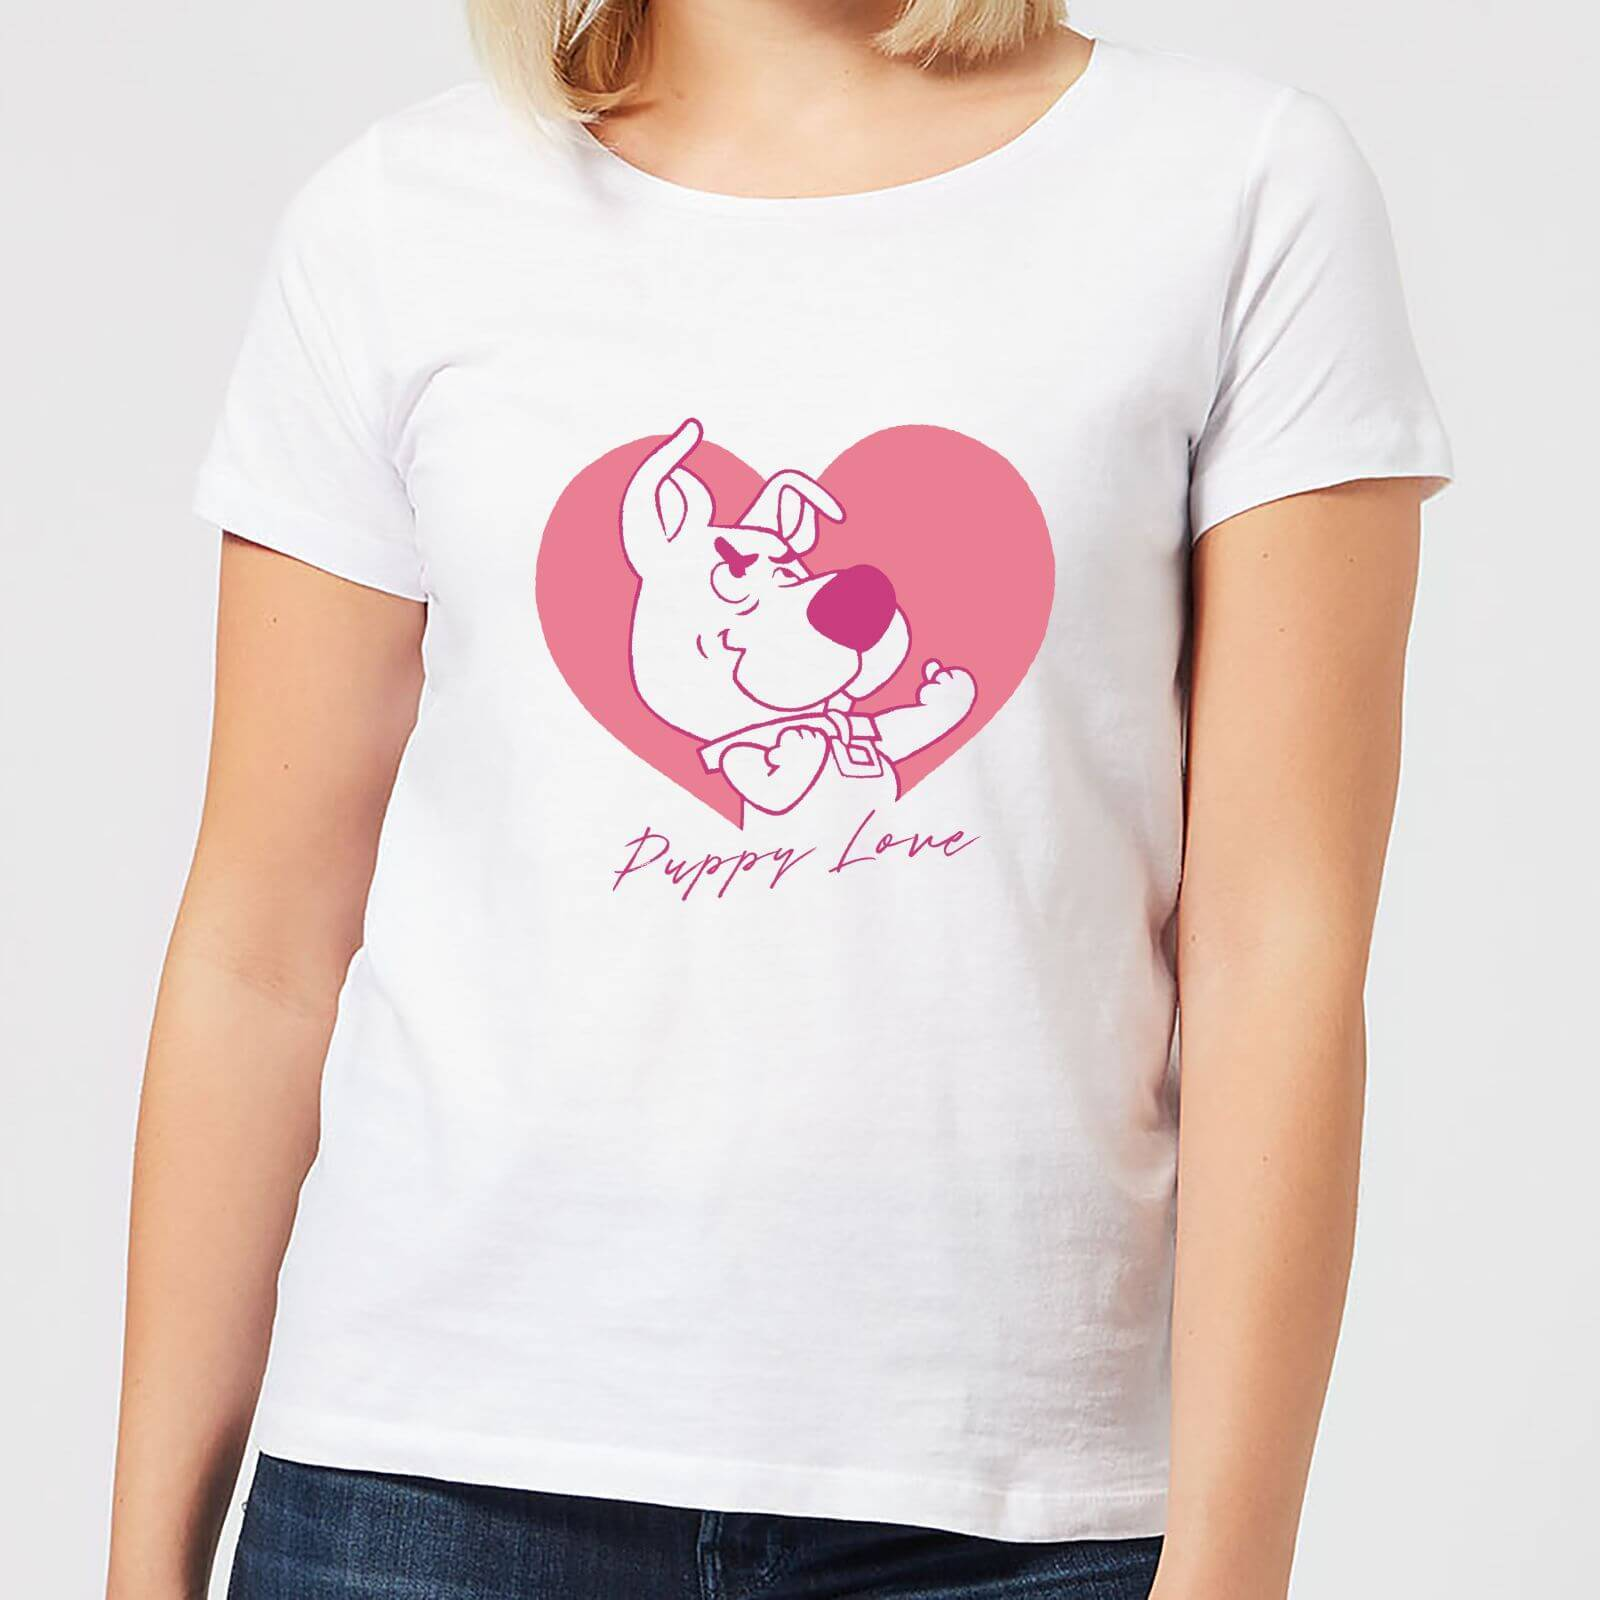 Scooby Doo Puppy Love Women's T-Shirt - White - 4XL - White